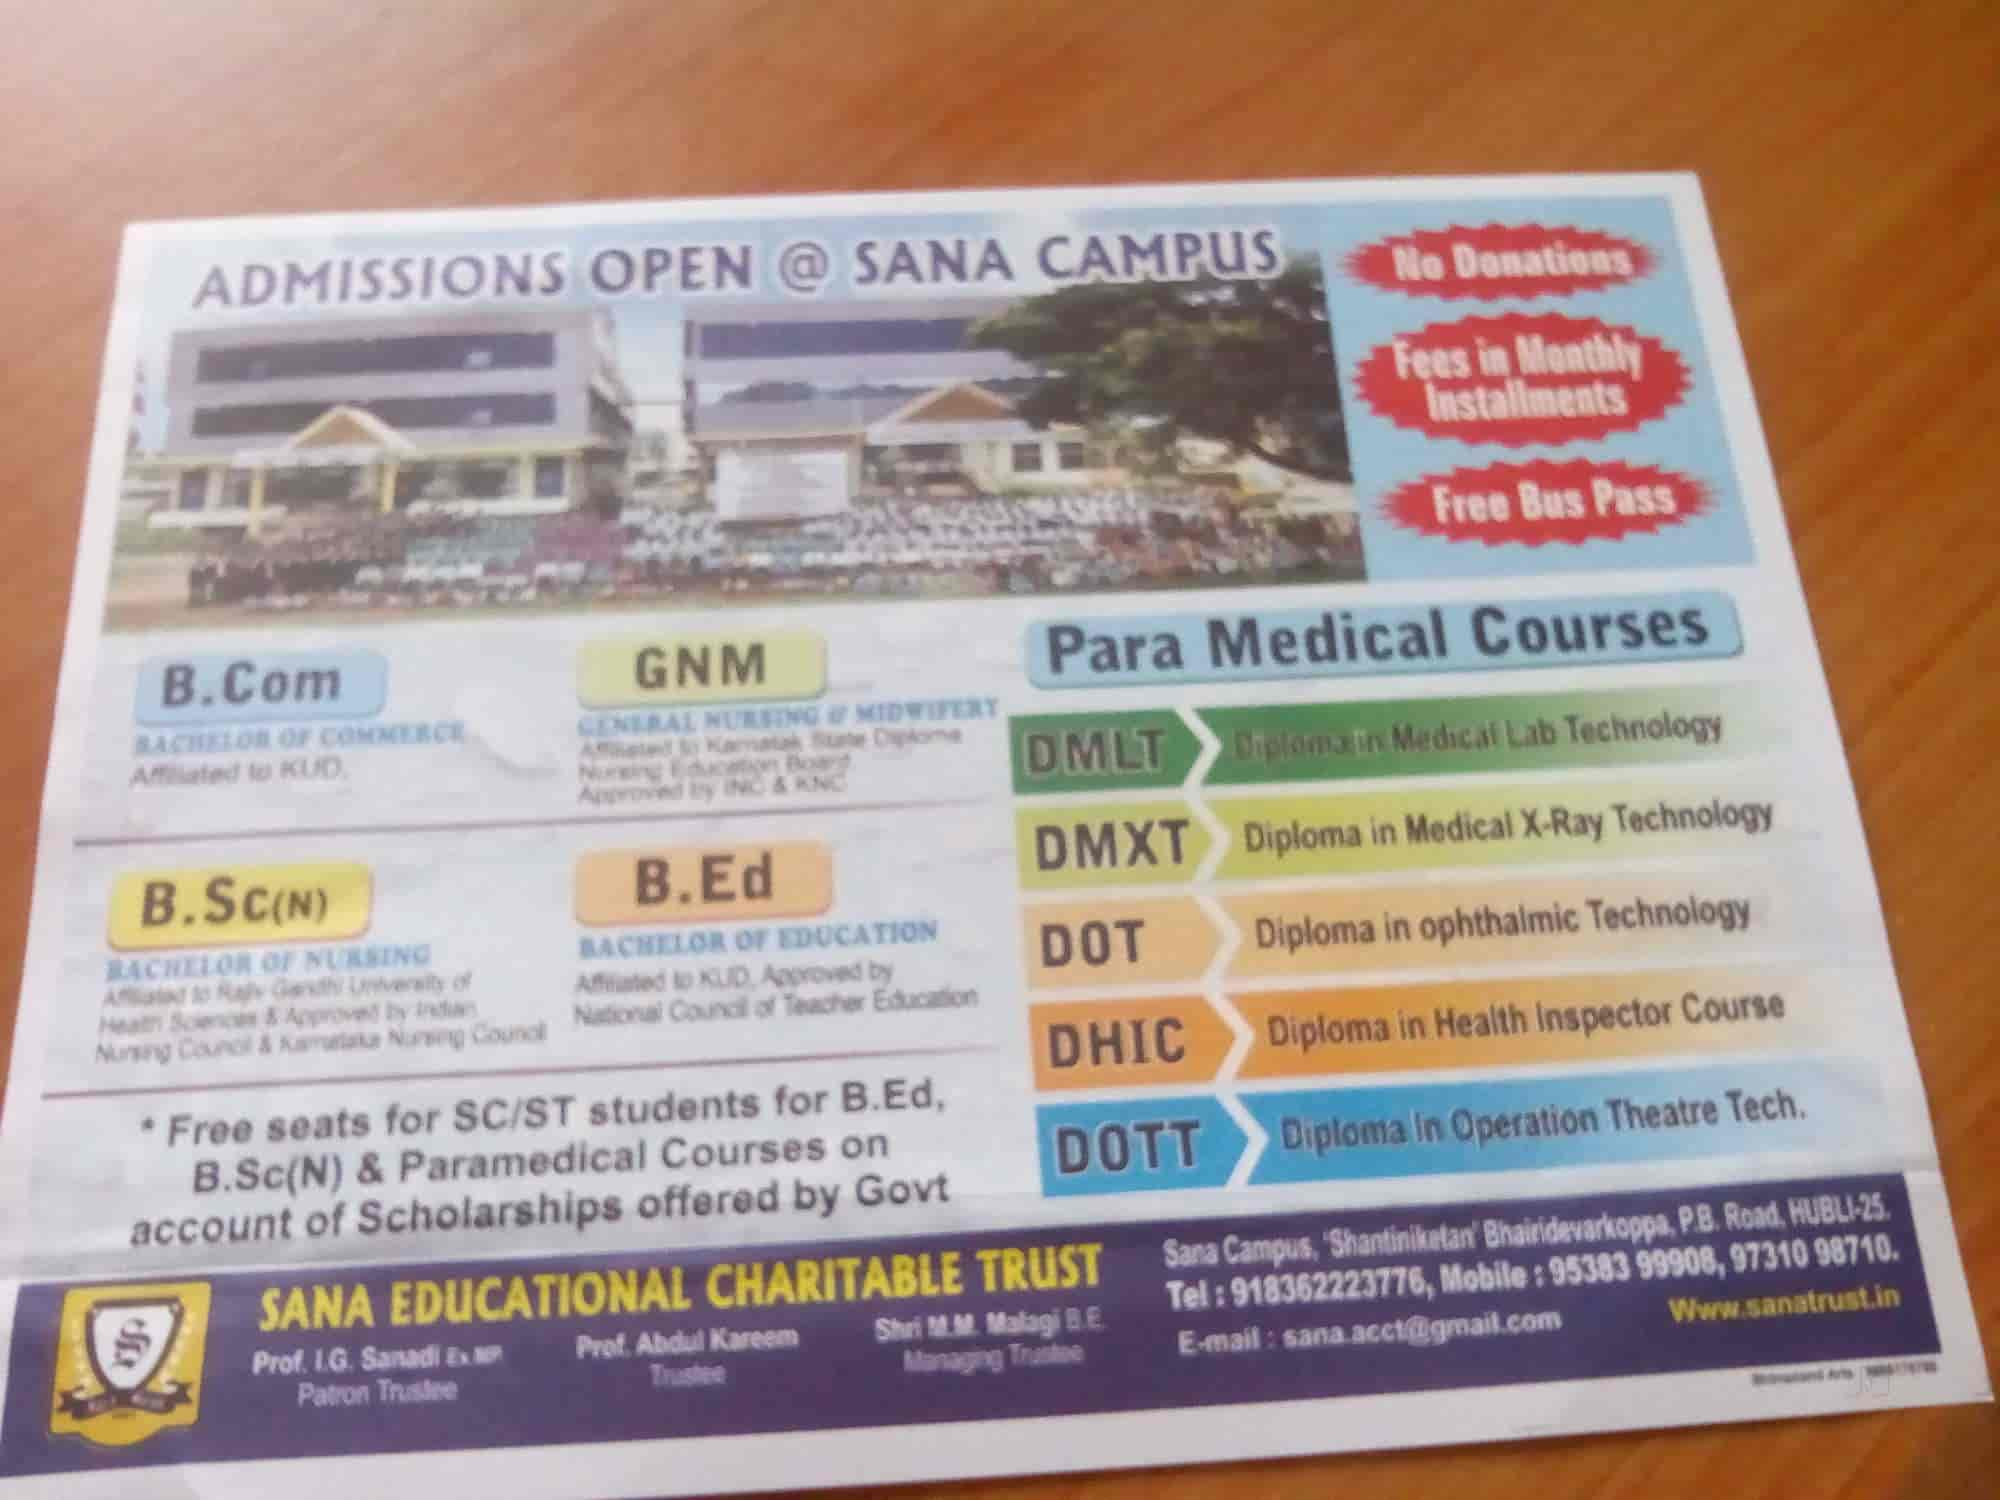 Sana Educational Charitable Trust-Sana College